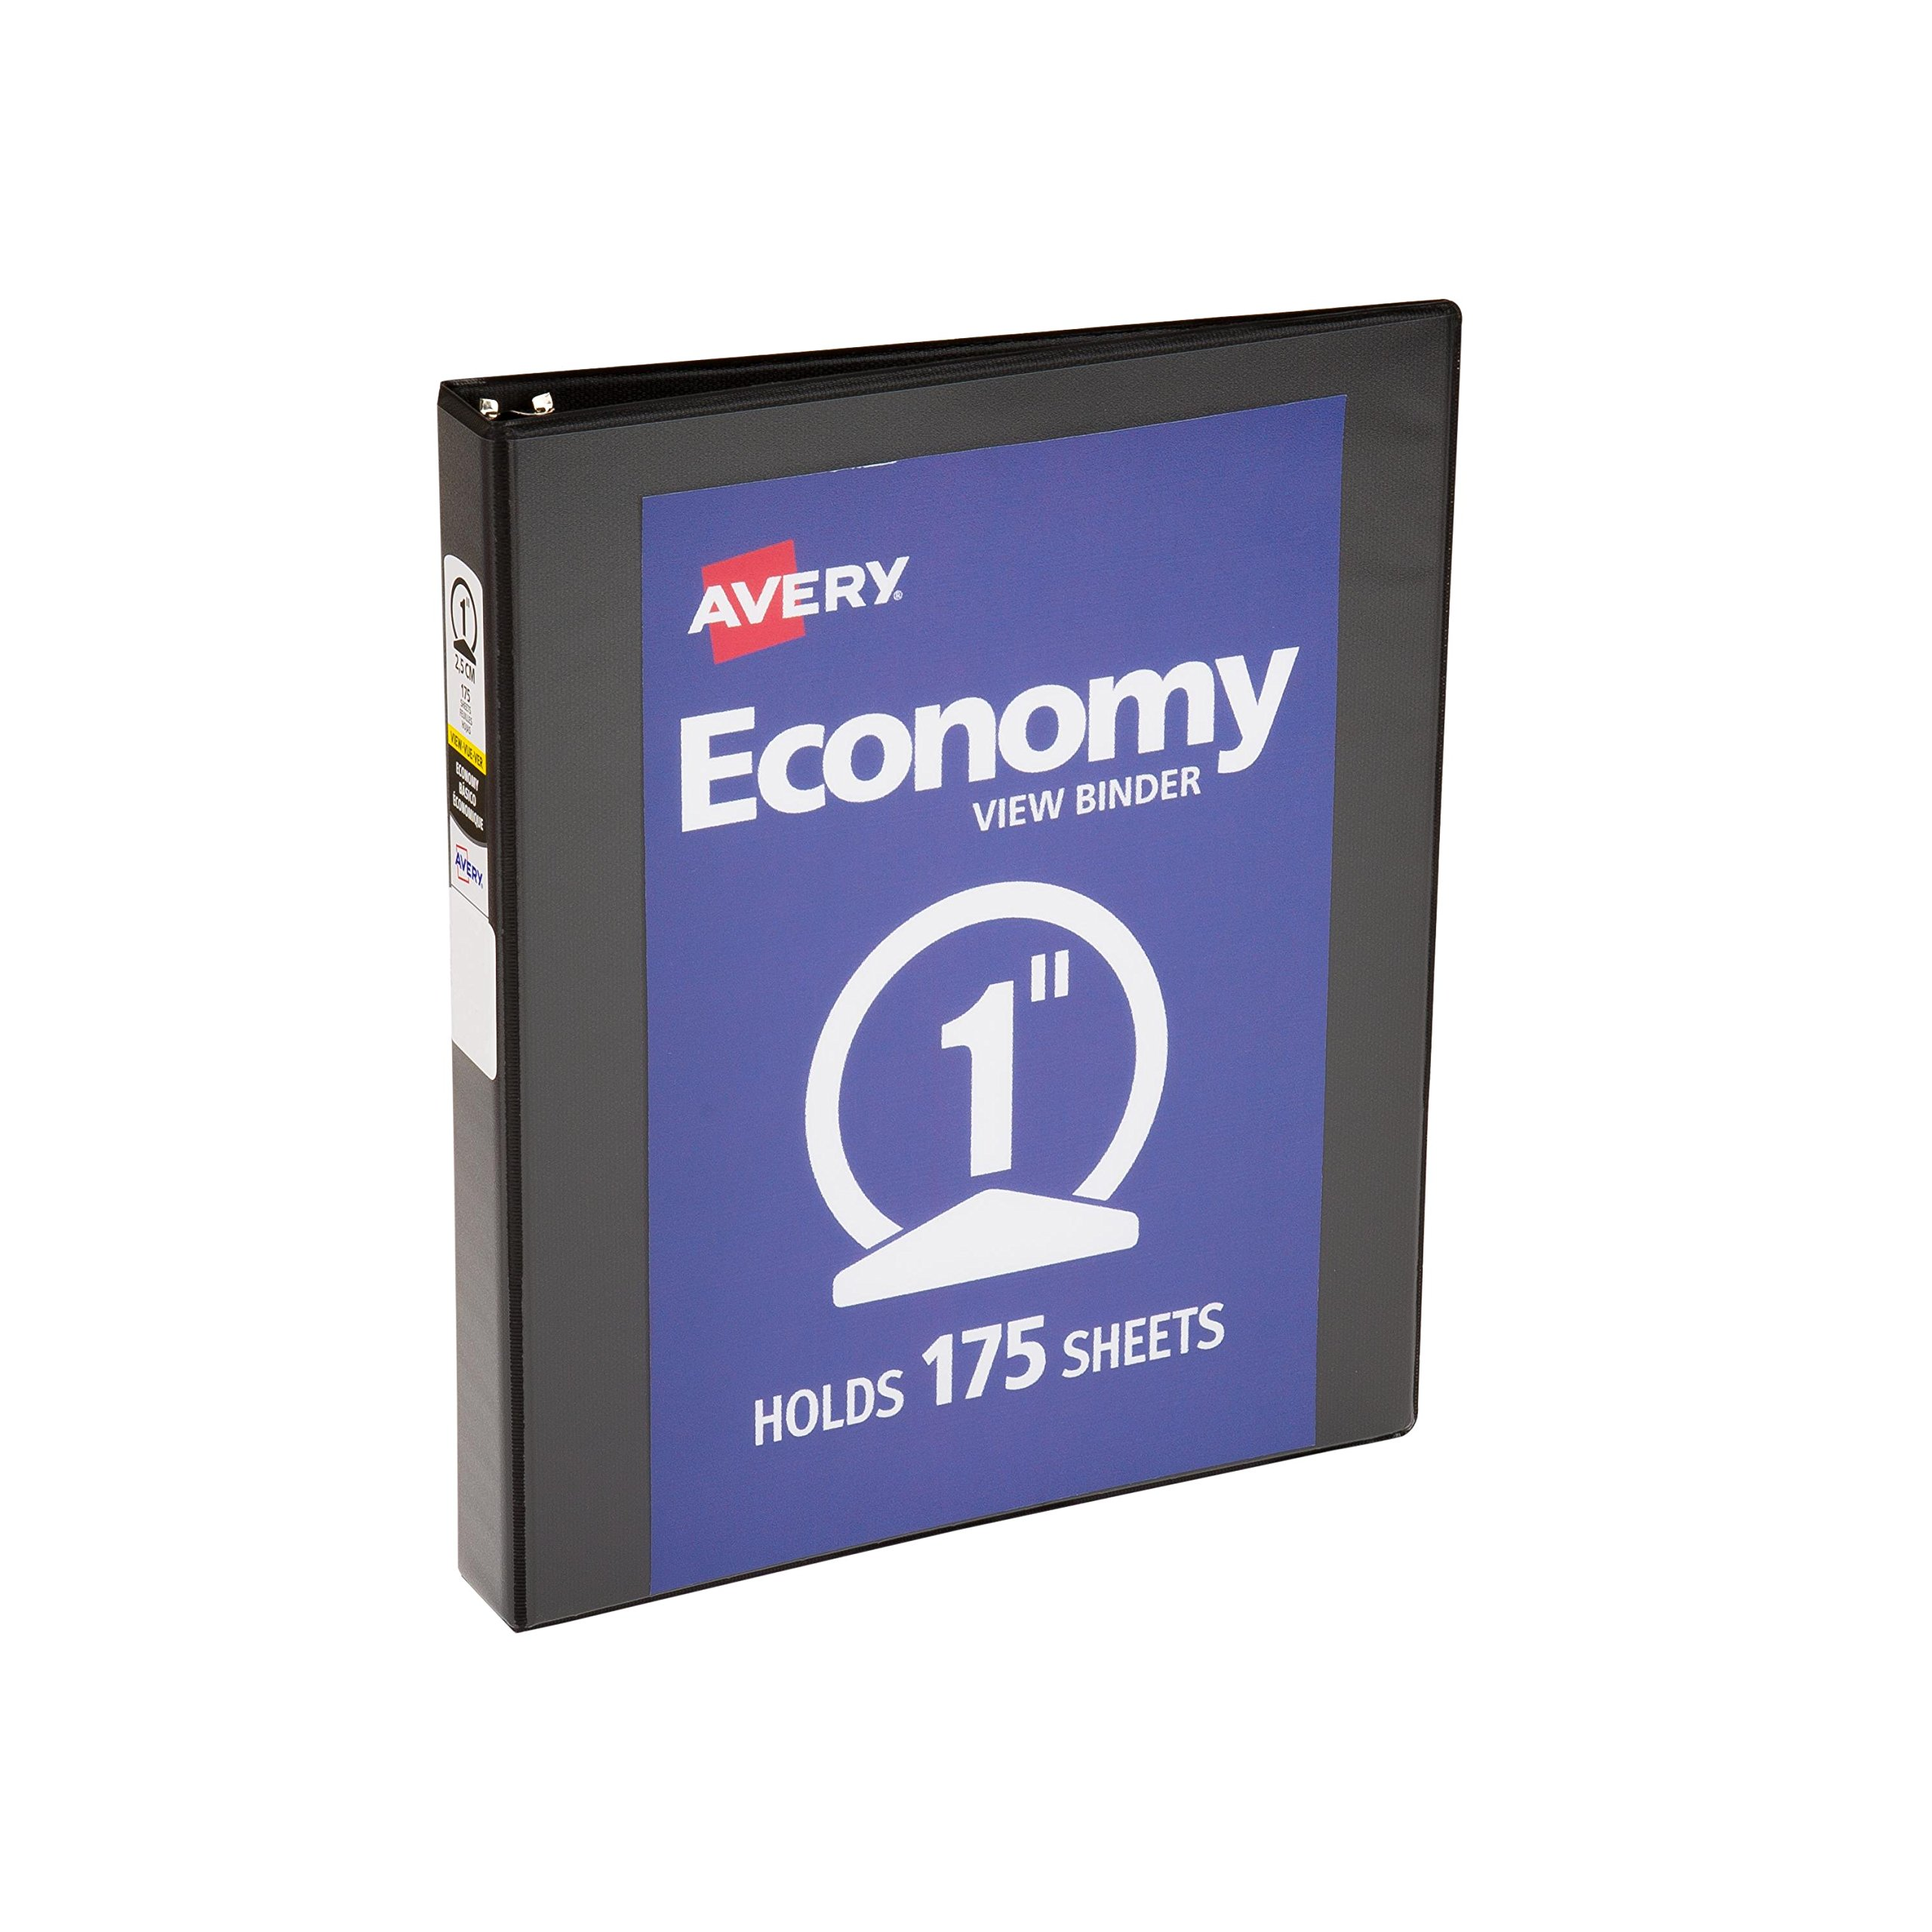 Avery Economy View Binder with 1 Inch Round Ring, Black (5761)